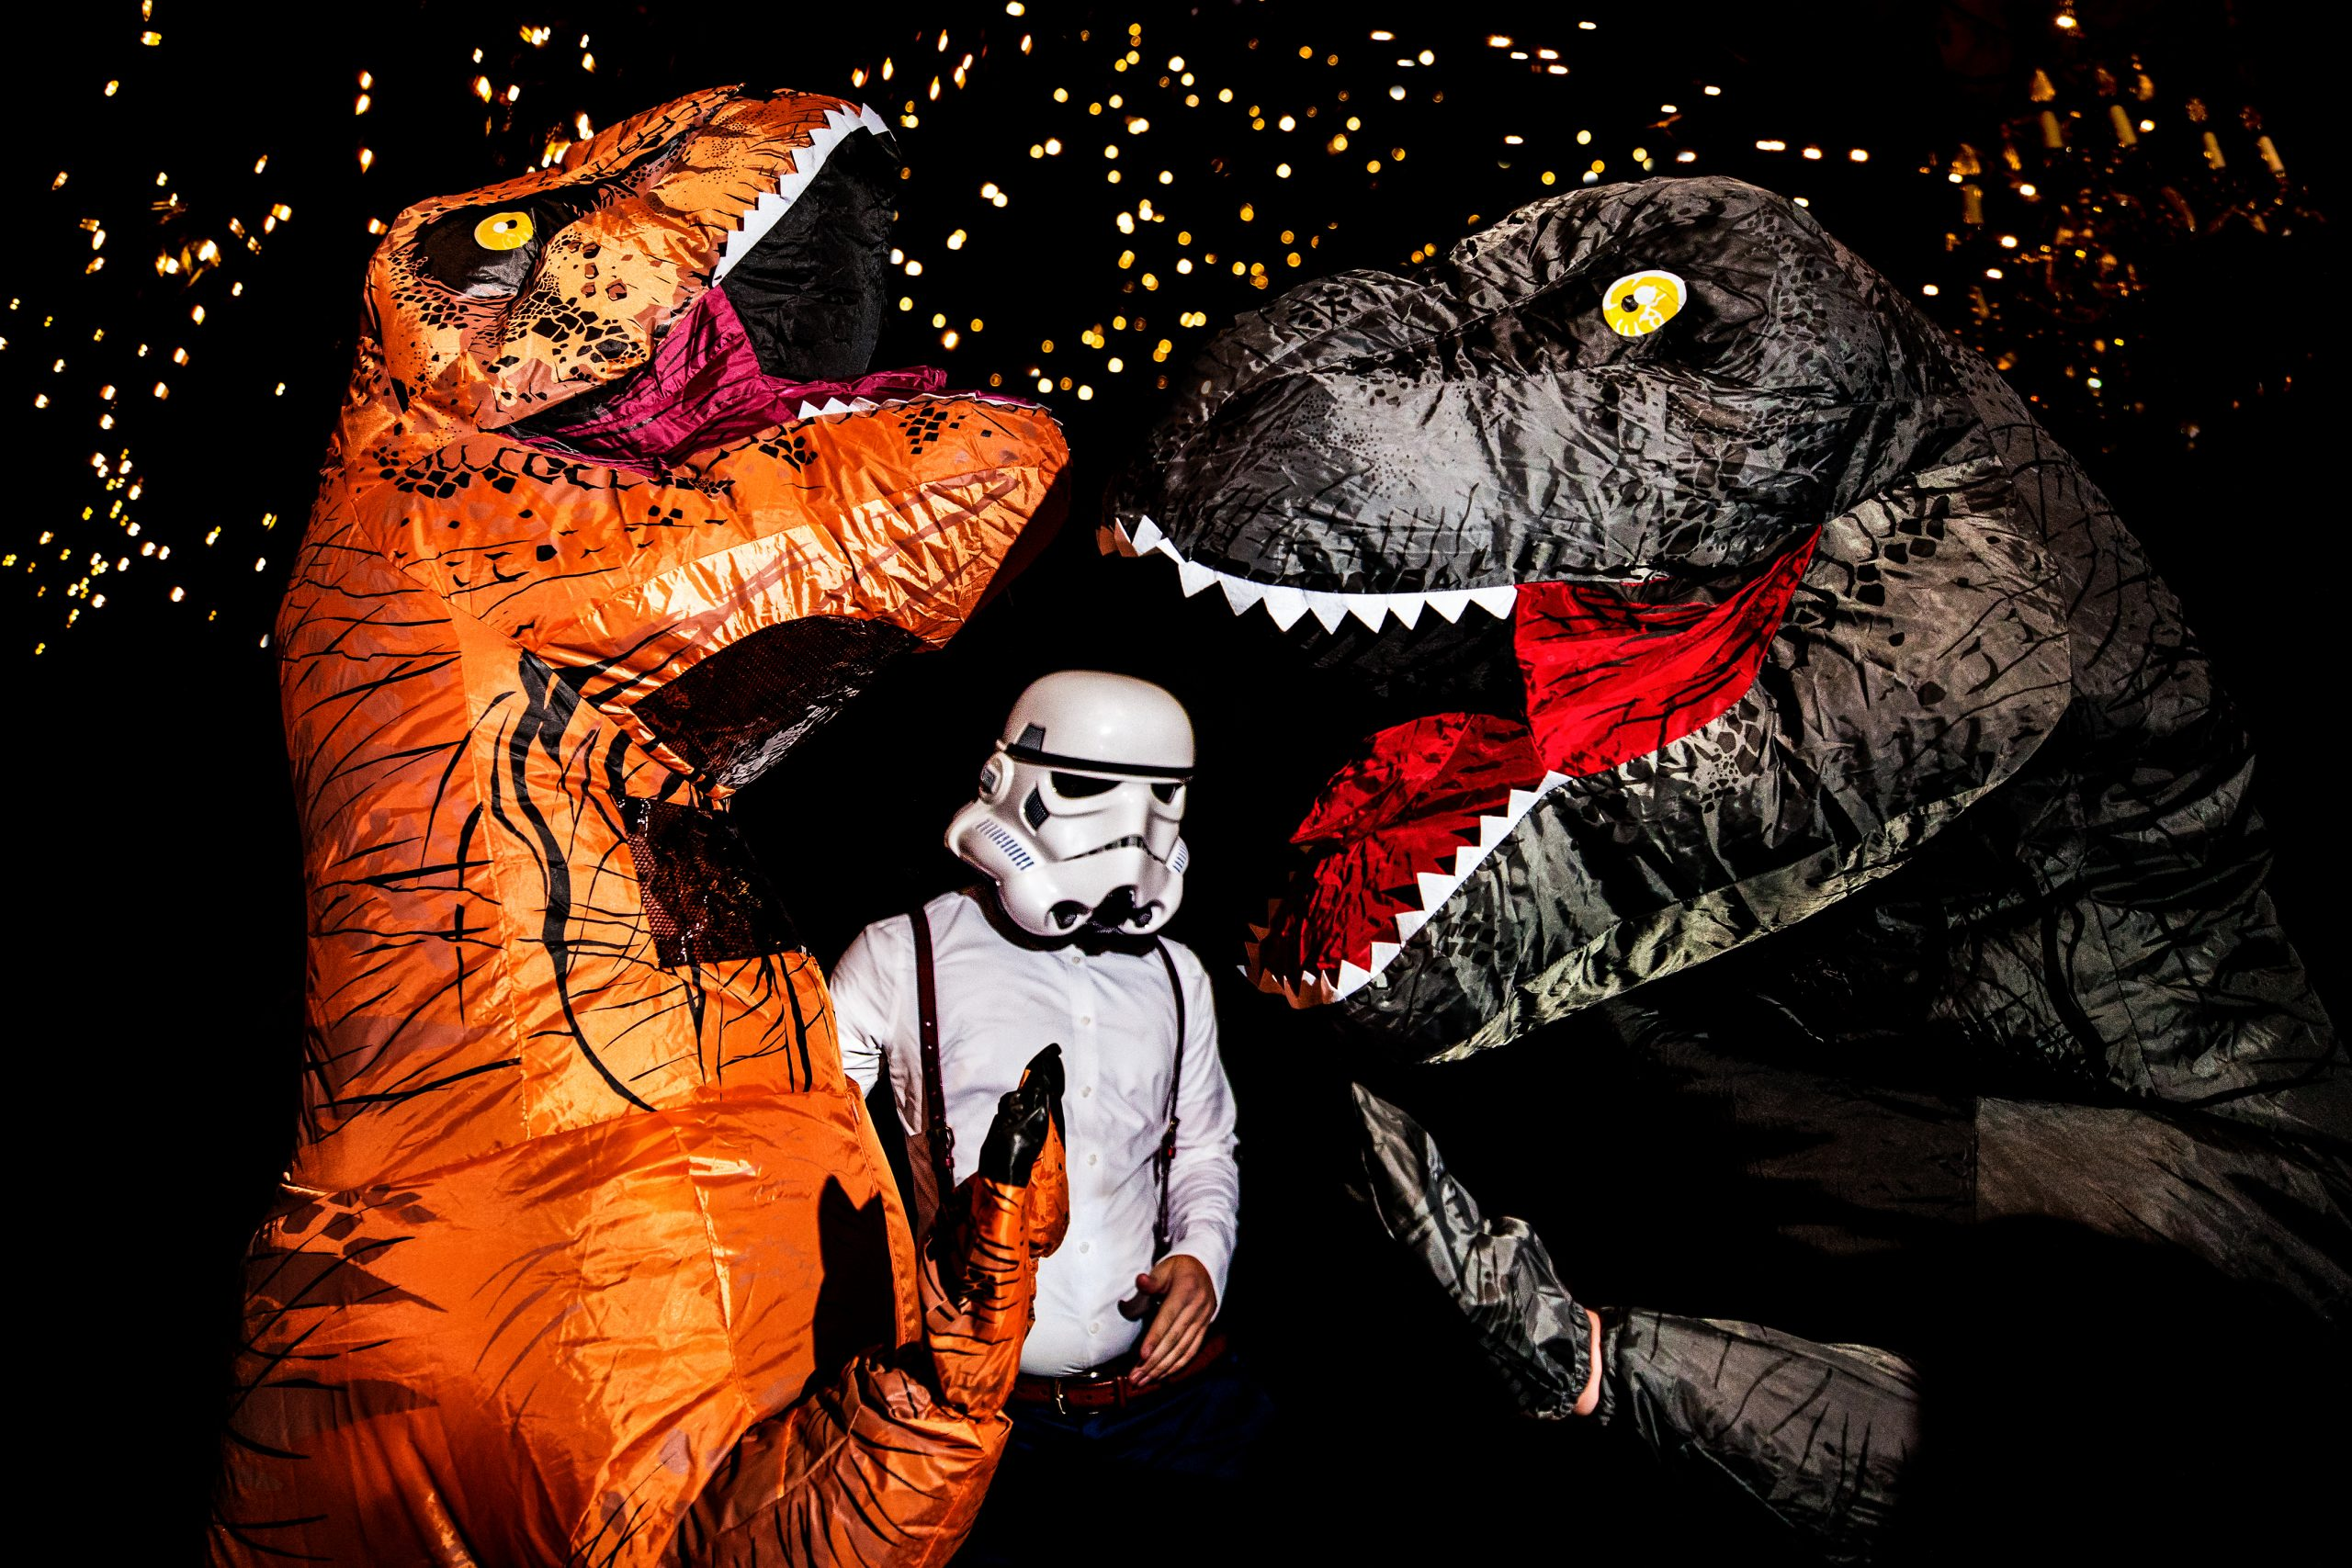 Groom donning a Stormtrooper helmet stands between two friends in inflated dinosaur costumes.